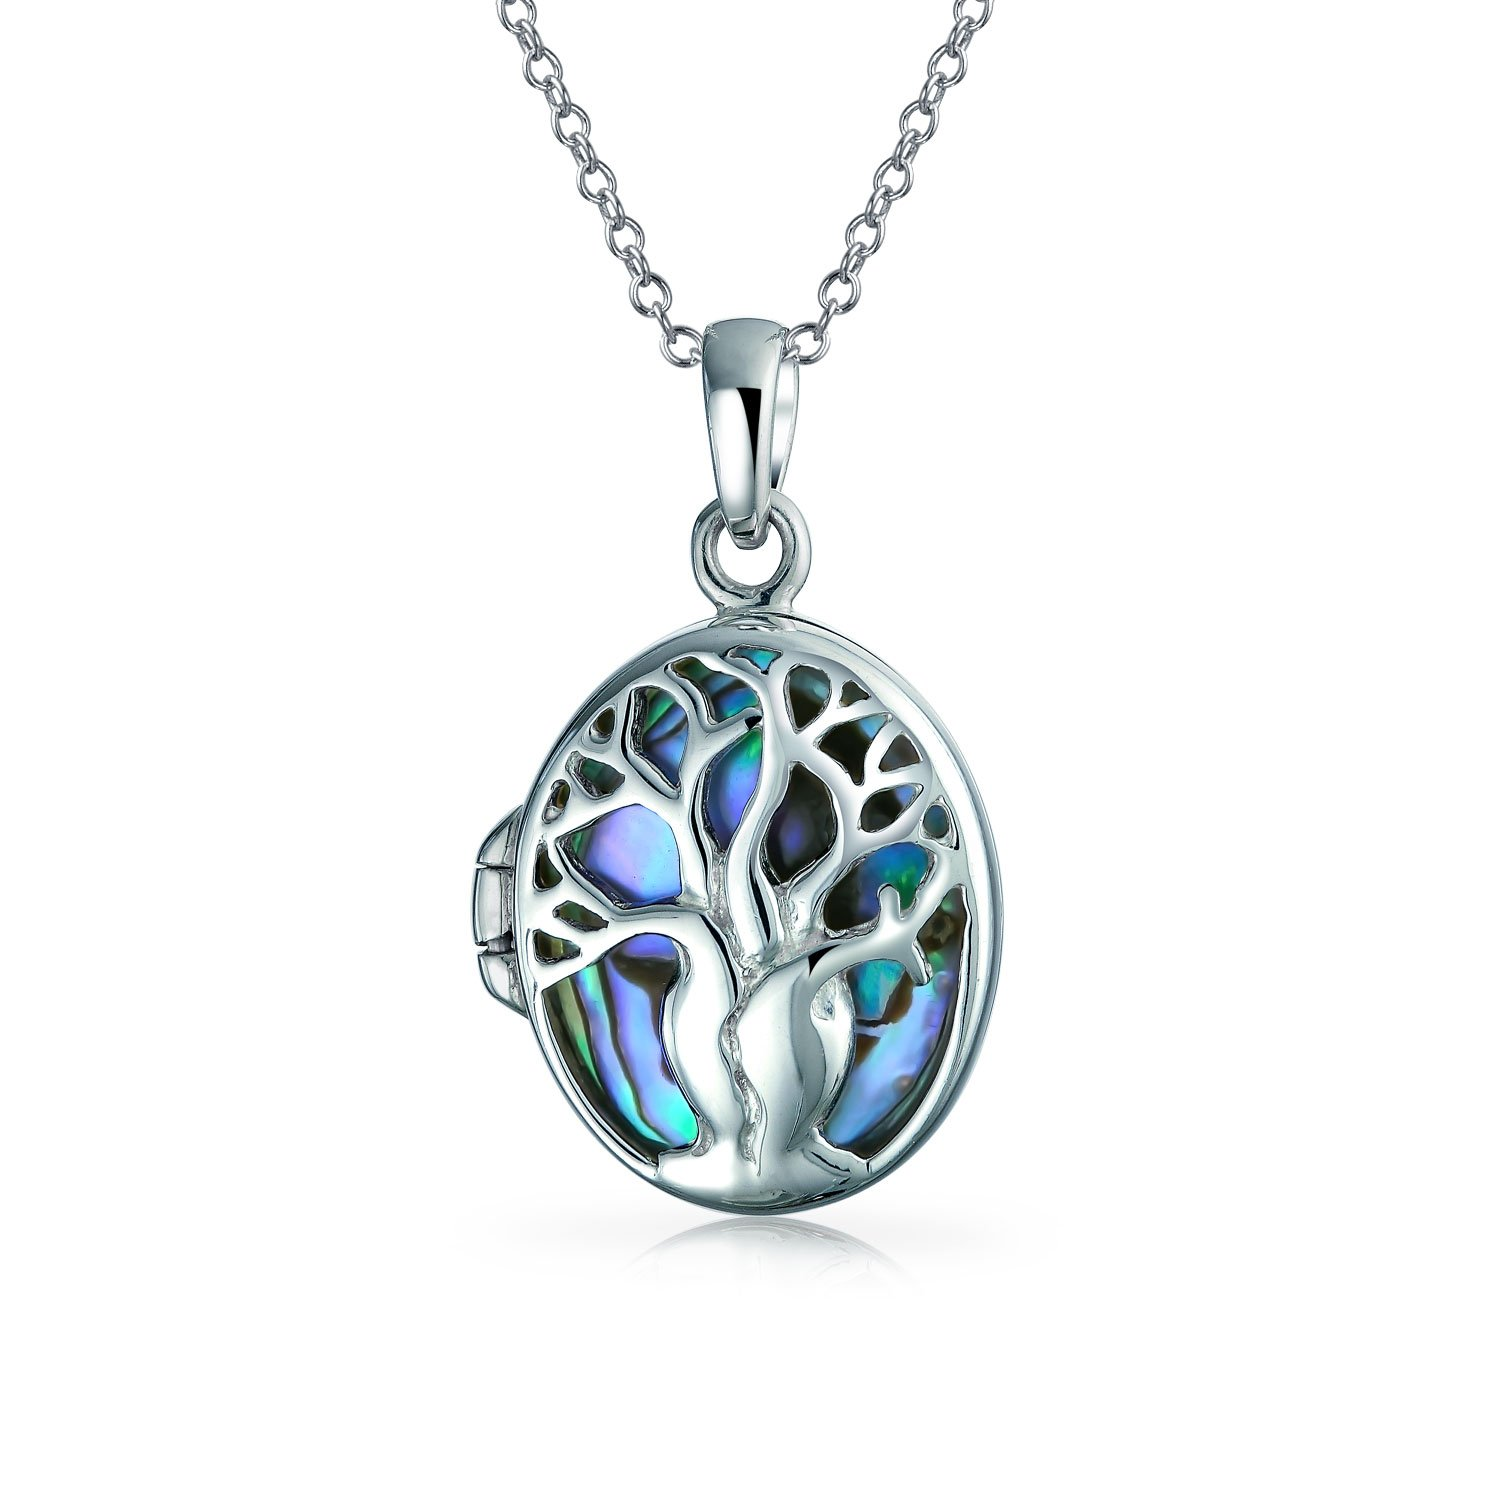 .925 Silver Abalone Shell Tree of Life Pendant Locket Necklace Bling Jewelry EAM-TSP7165